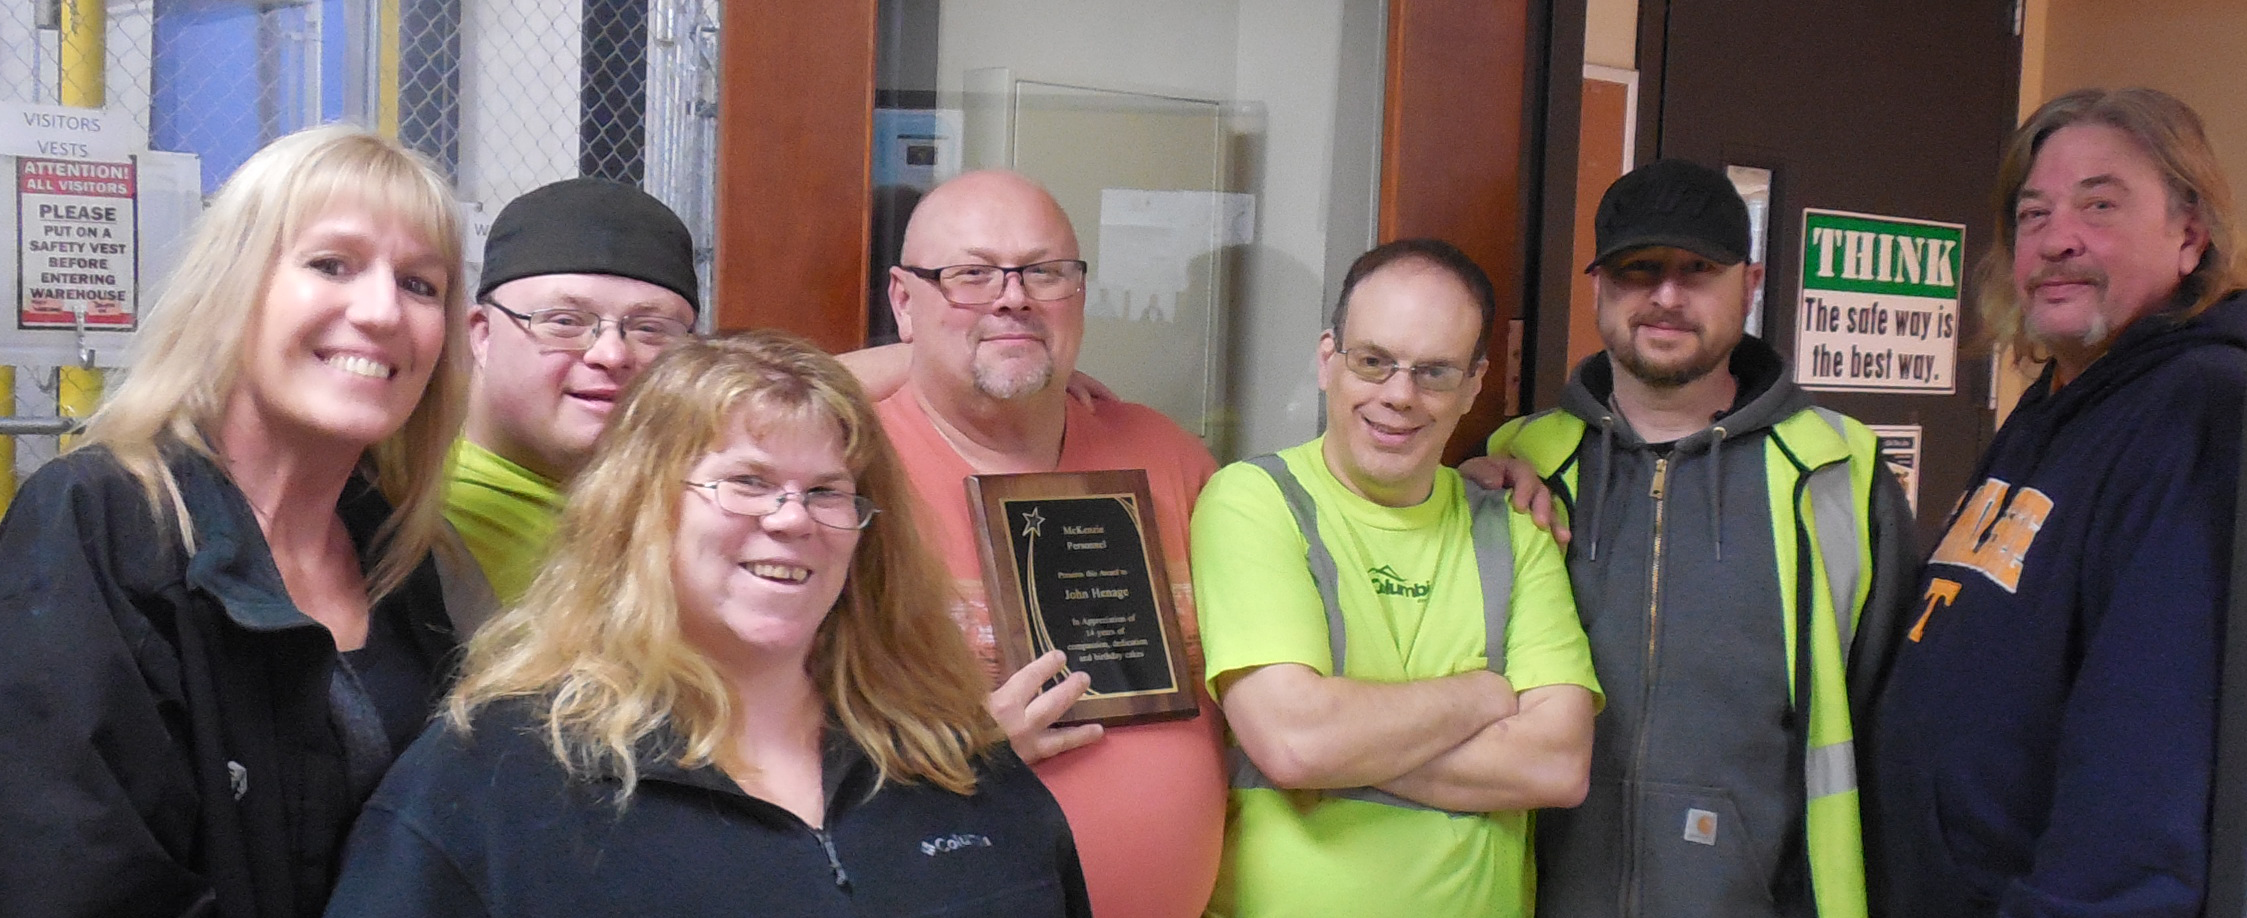 Appreciation Award For John At Columbia Distributing